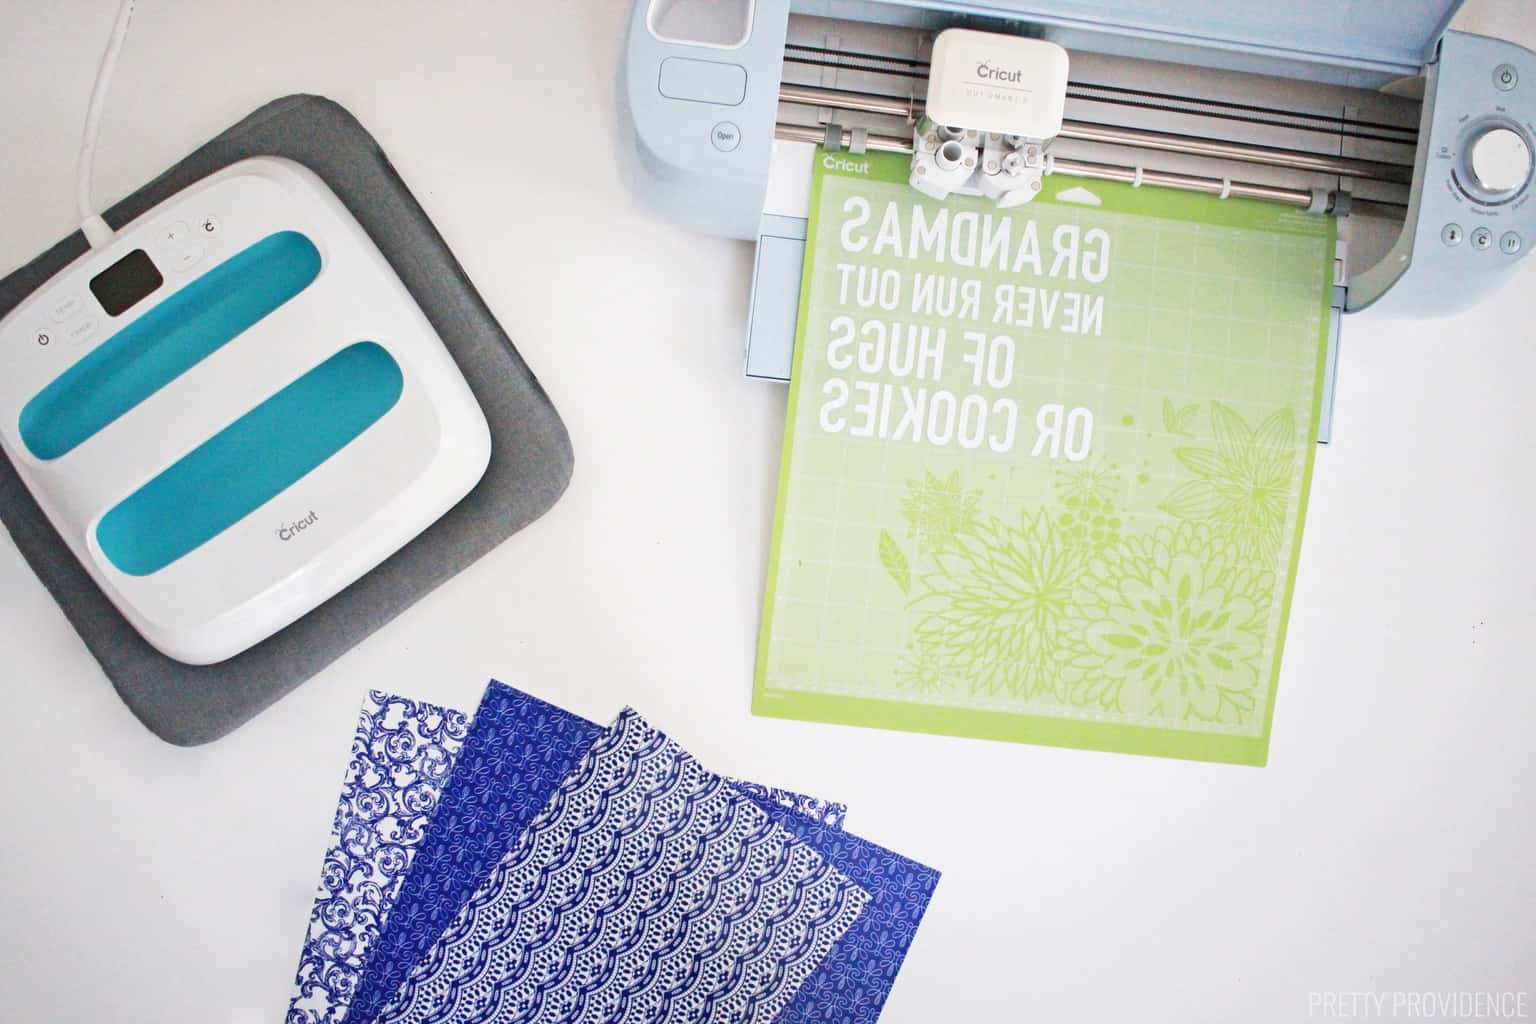 Cricut machine, EasyPress, EasyPress mat and new Patterned Iron On